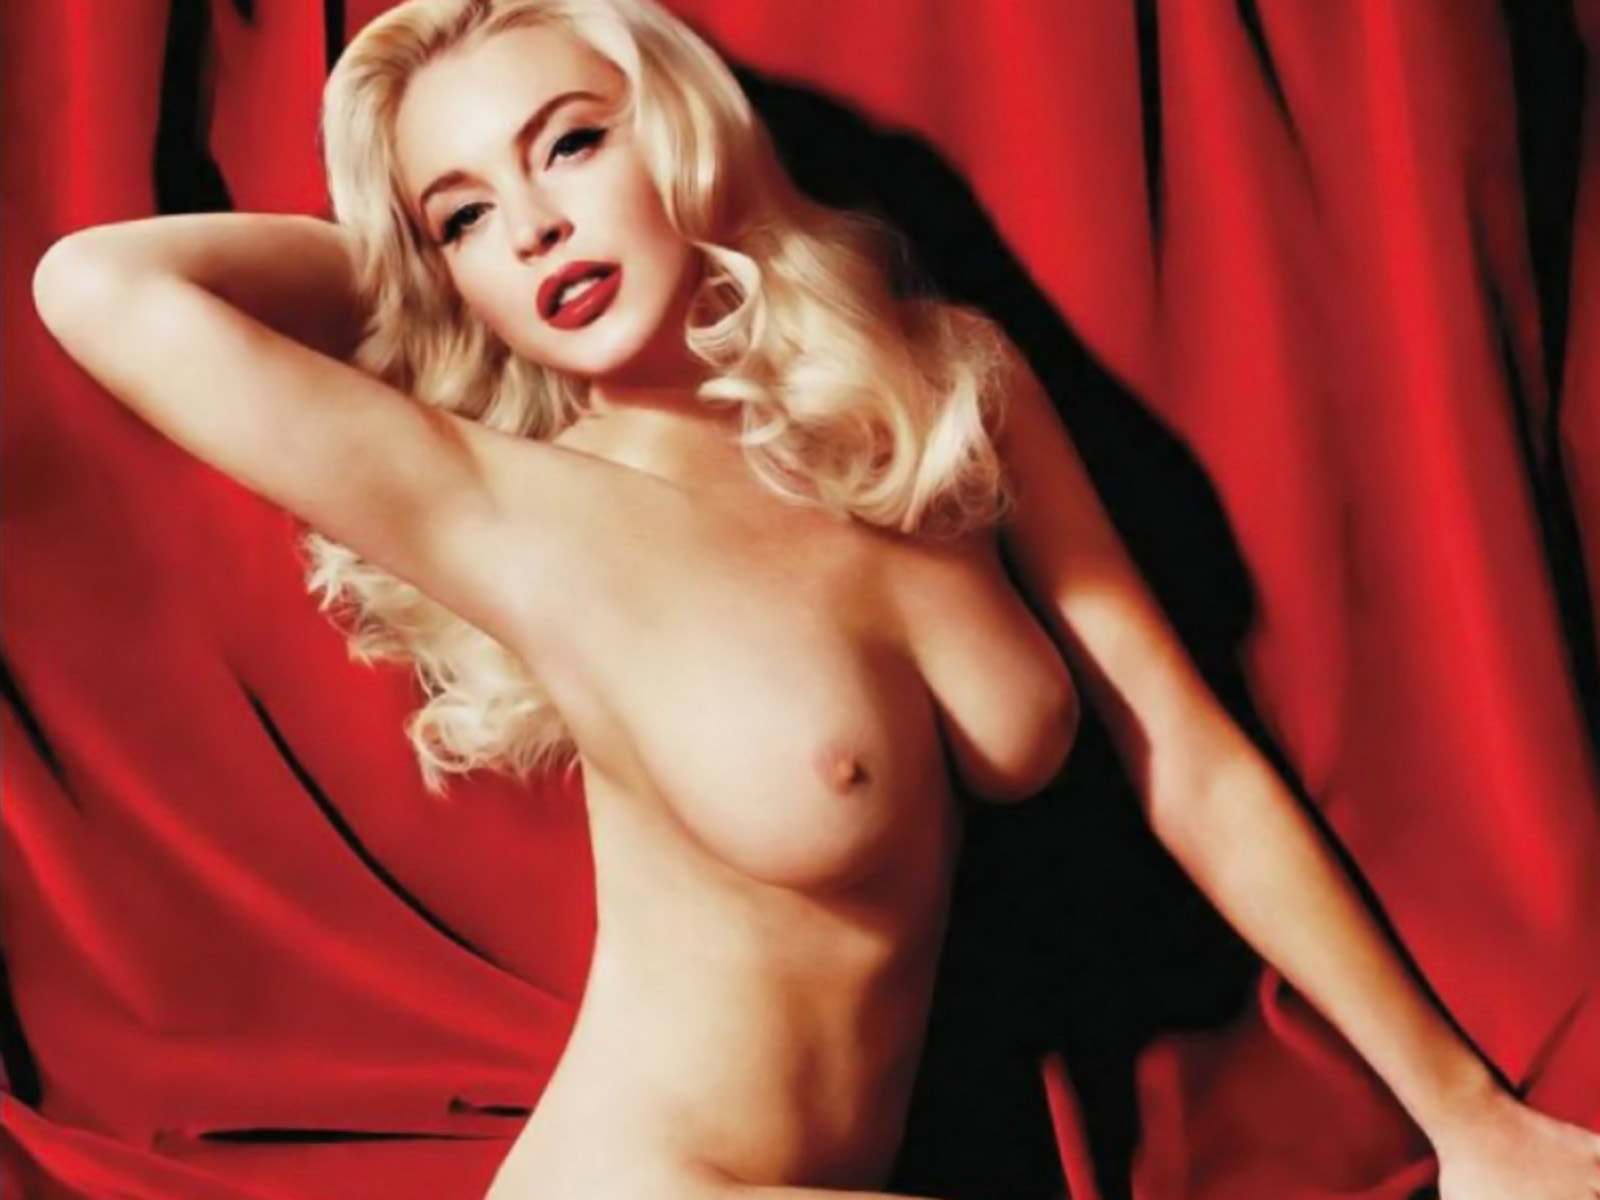 See and save as lindsay lohan as marilyn monroe nude on red velvet porn pict